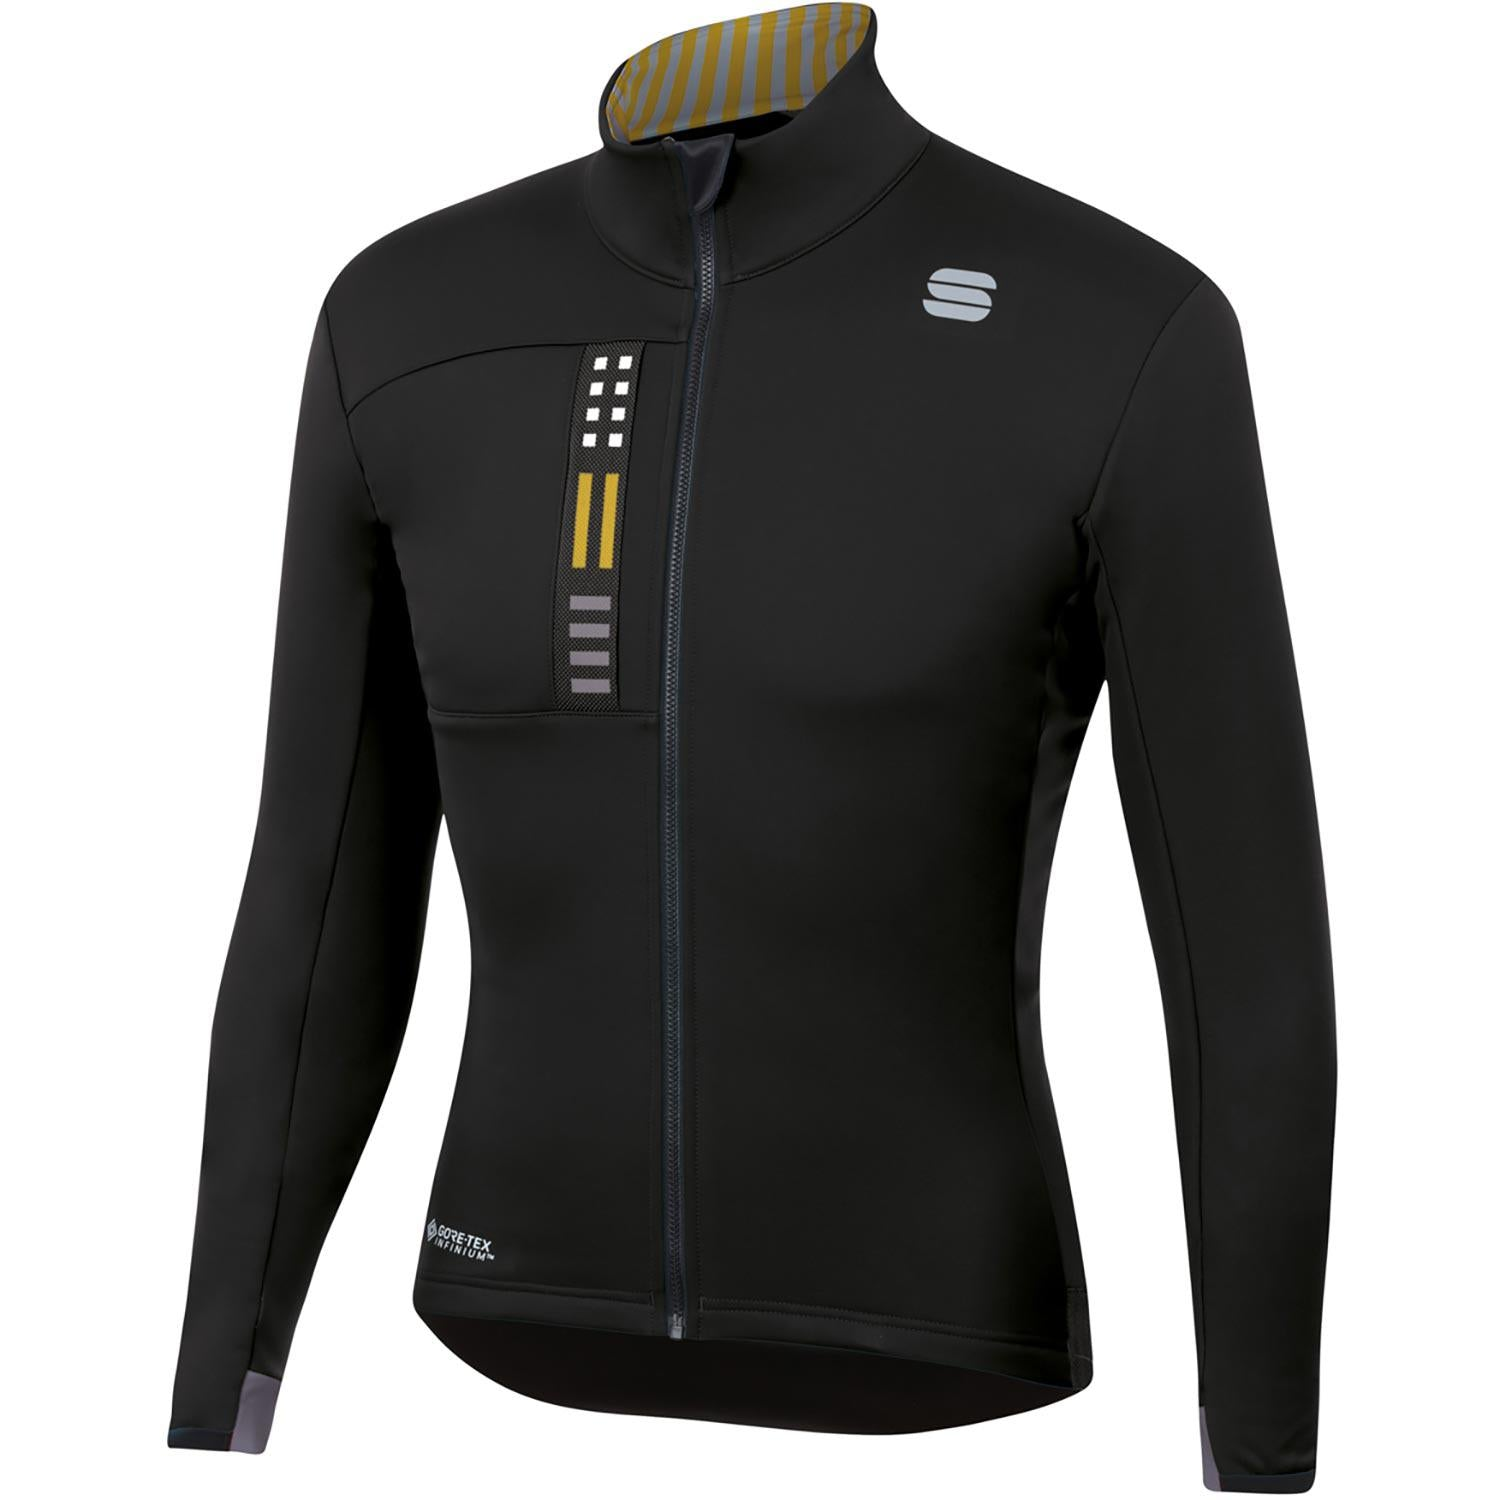 Sportful-Sportful Super Jacket-Black-S-SF205110022-saddleback-elite-performance-cycling